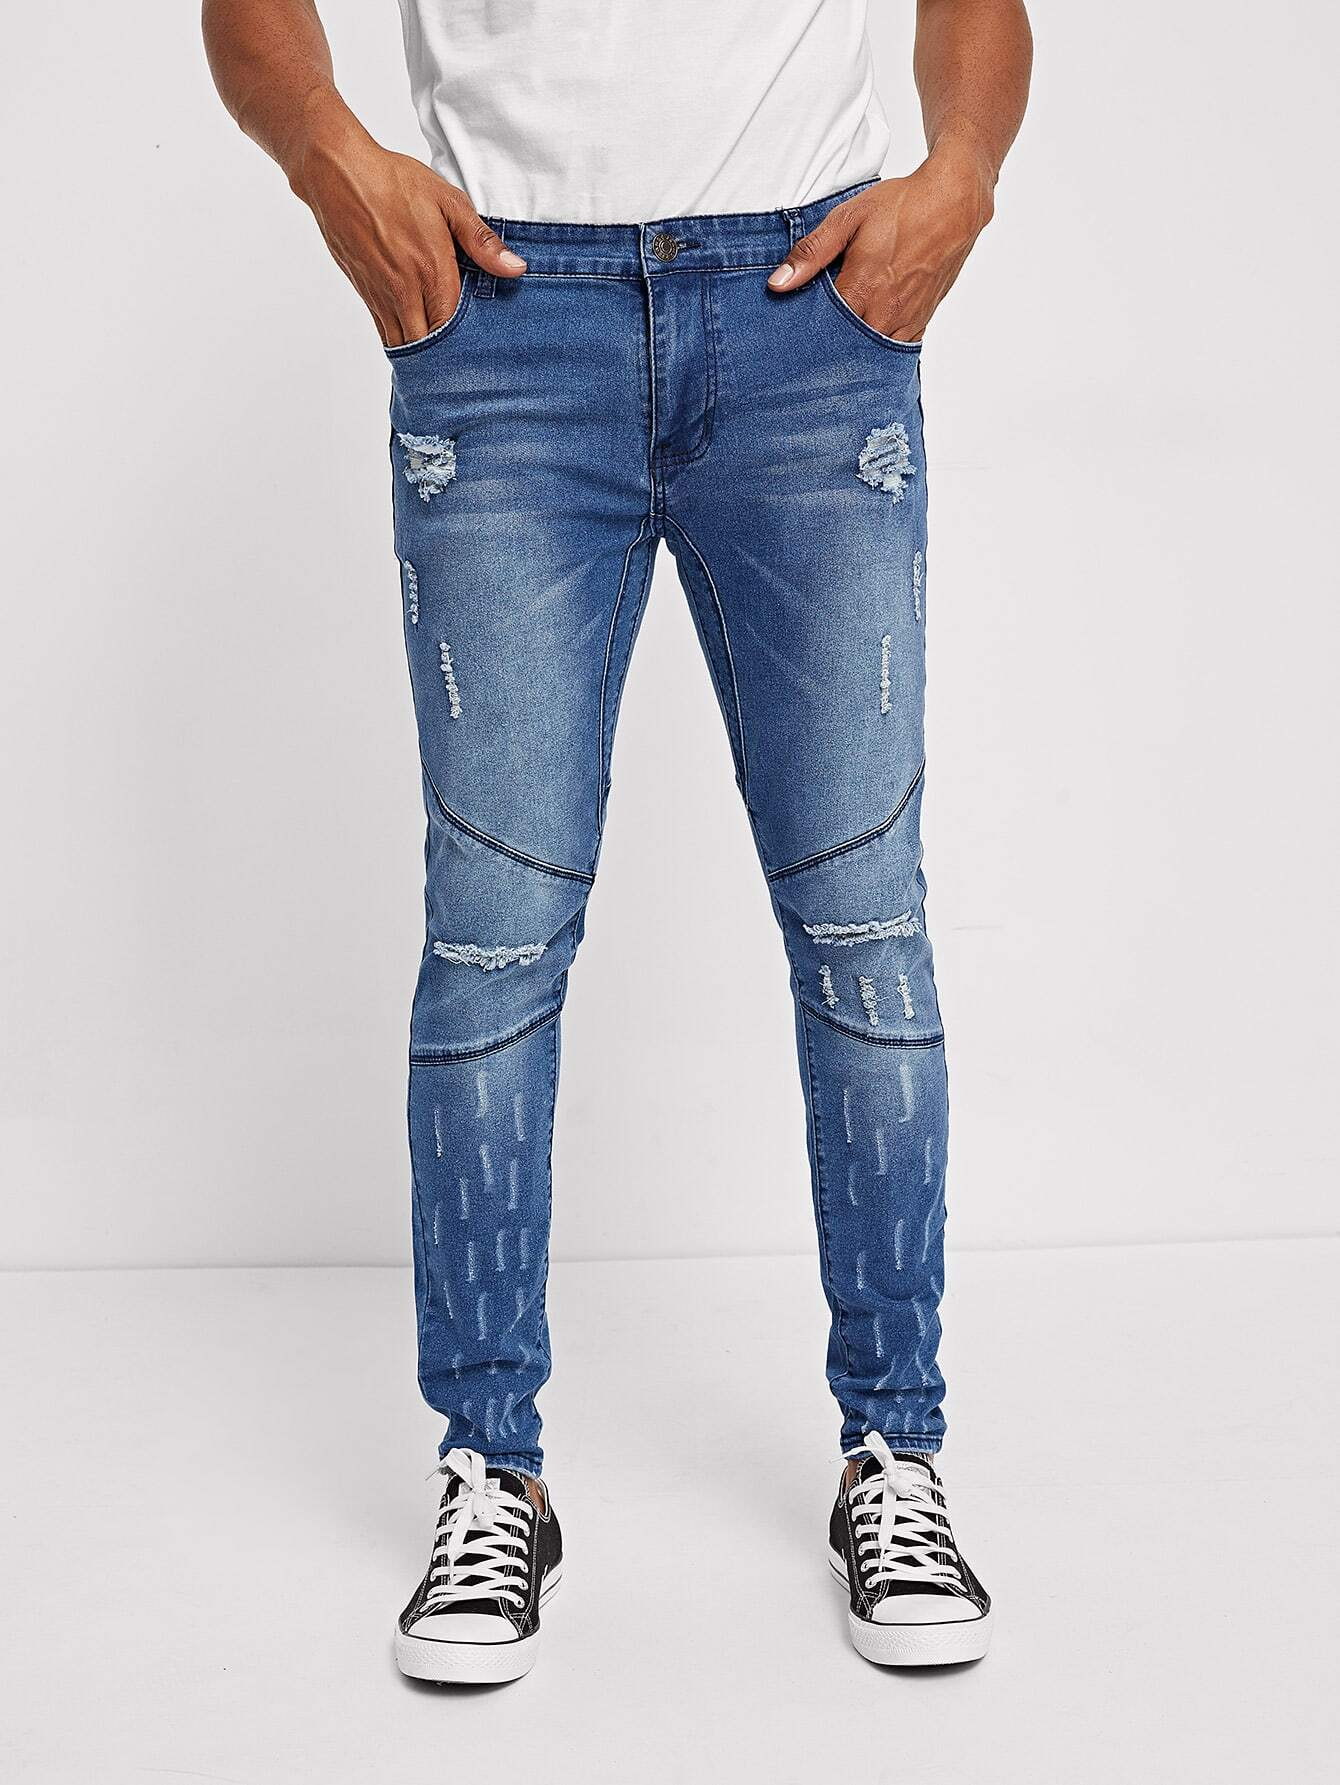 Men Ripped Detail Bleach Wash Jeans Men Ripped Detail Bleach Wash Jeans